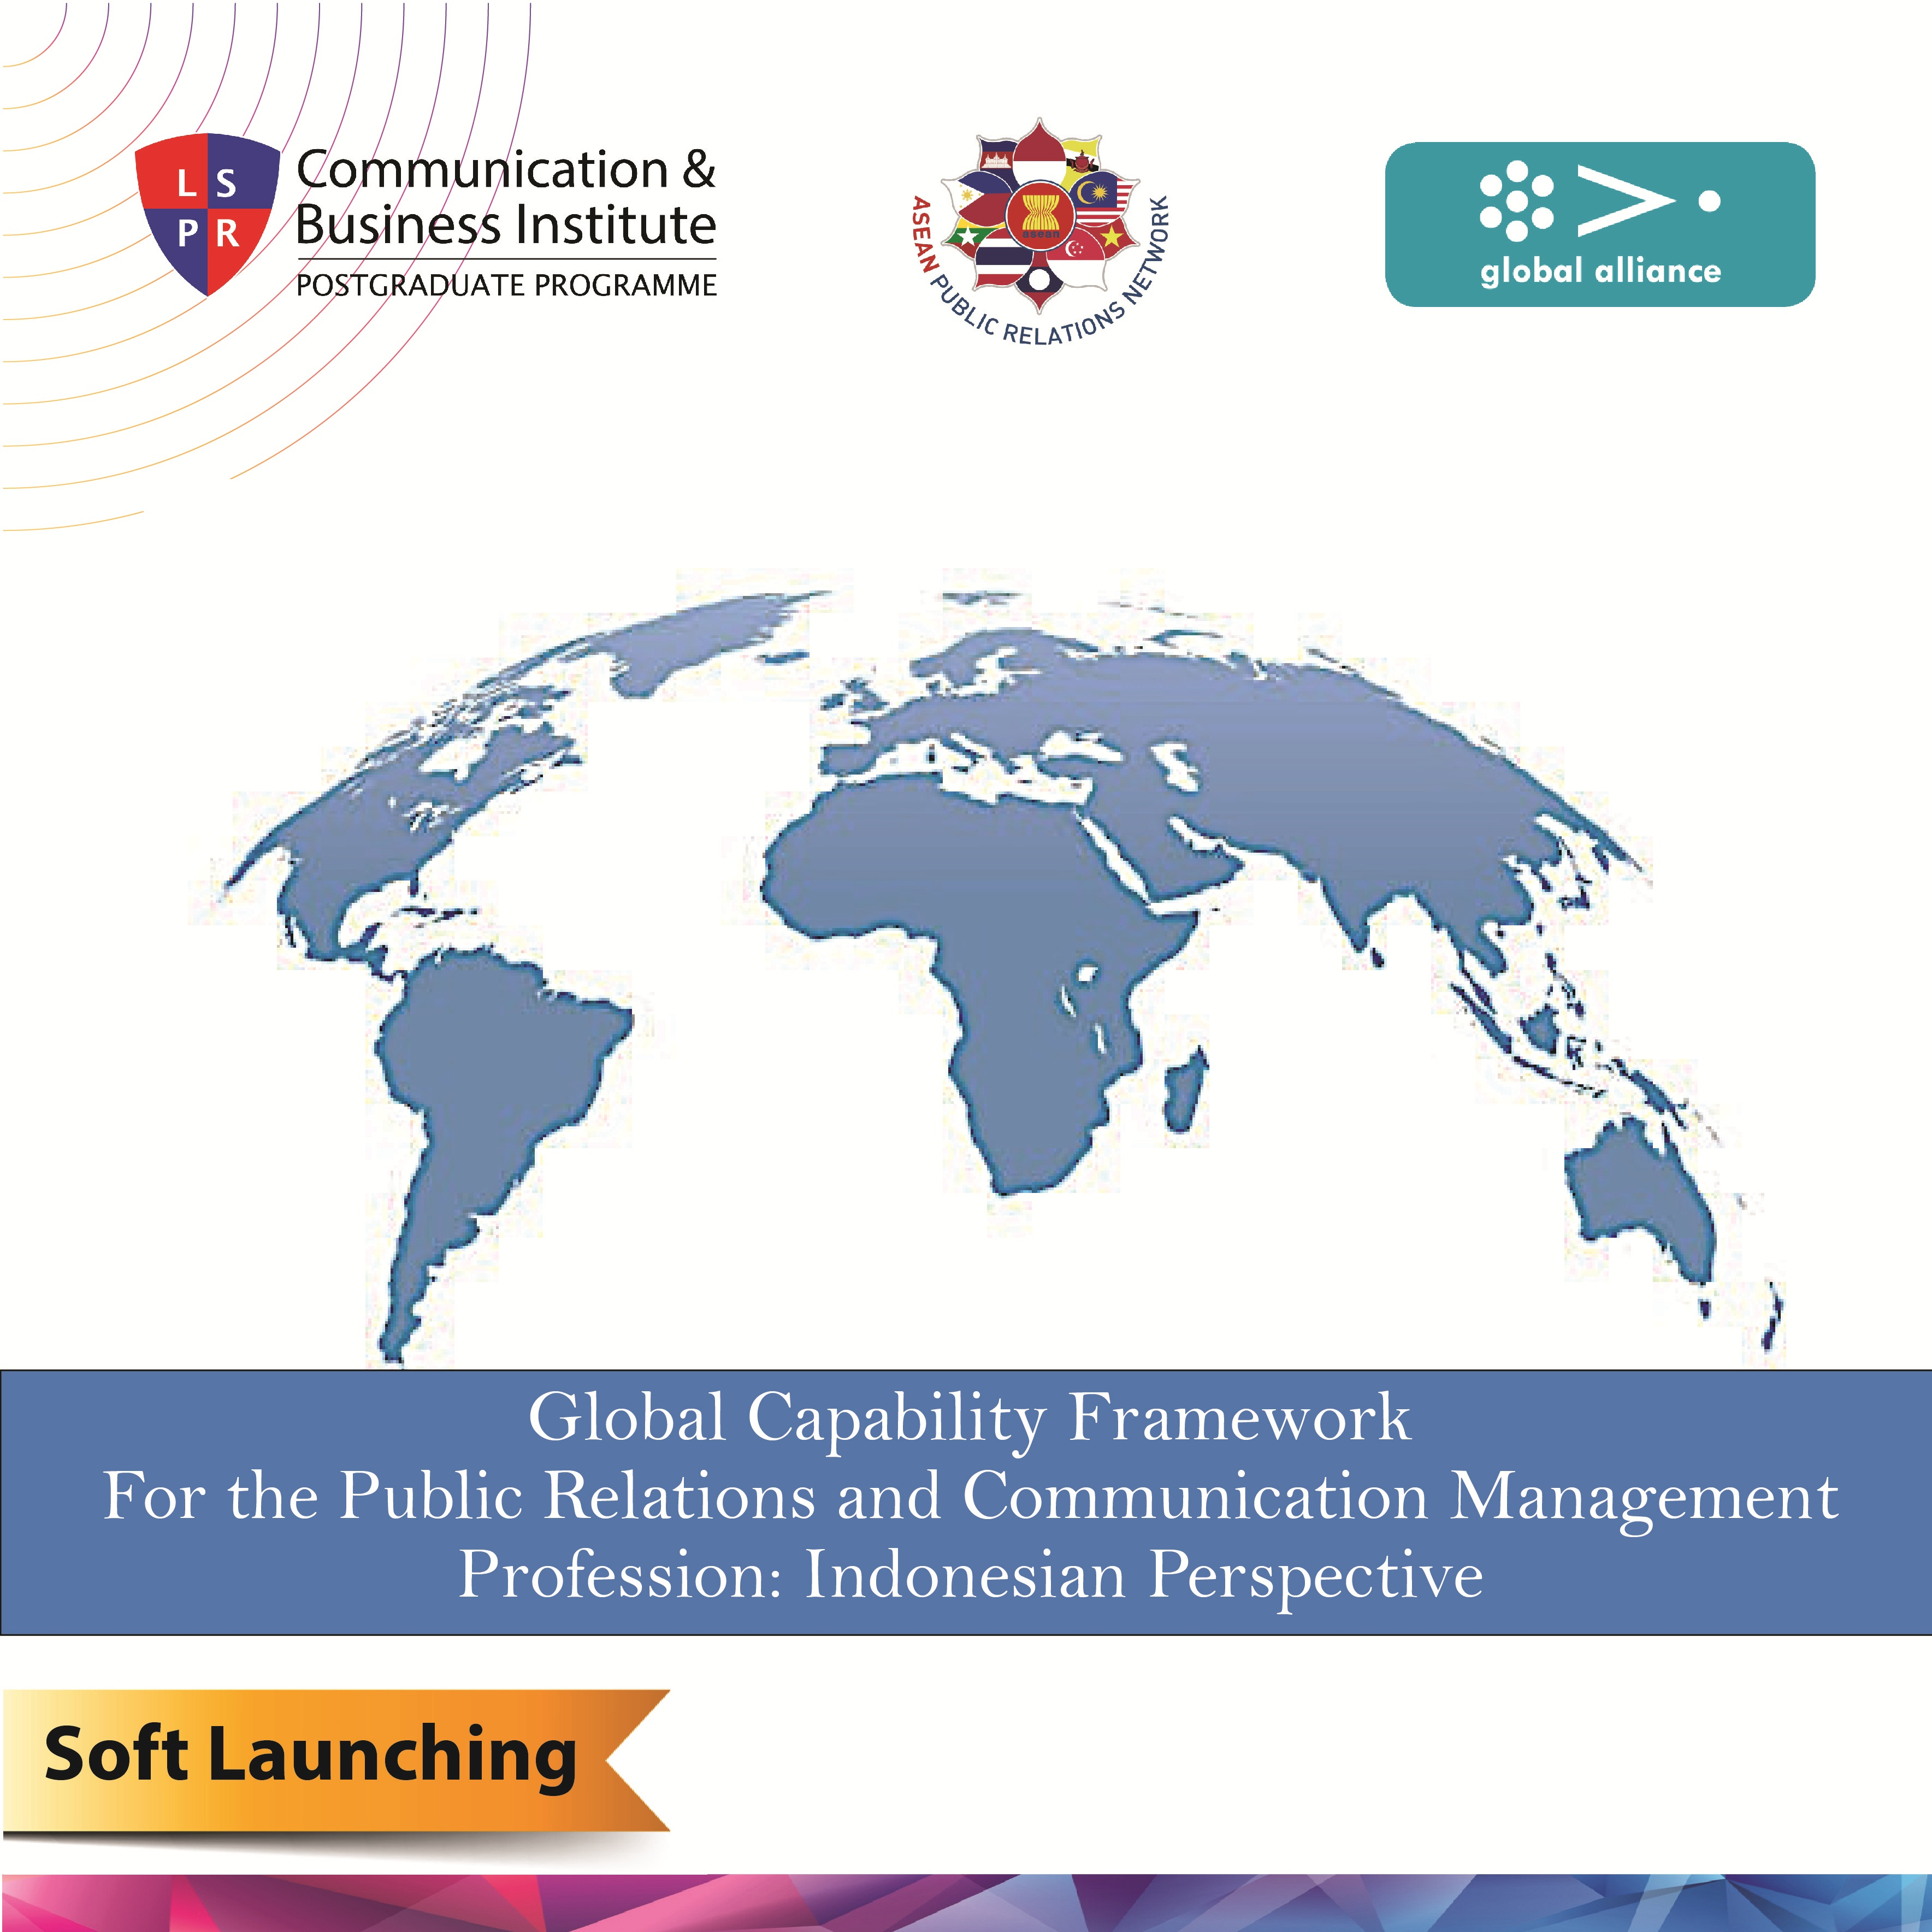 GLOBAL CAPABILITY FRAMEWORK FOR THE PUBLIC RELATION AND COMMUNICATION MANAGEMENT PROFESSION